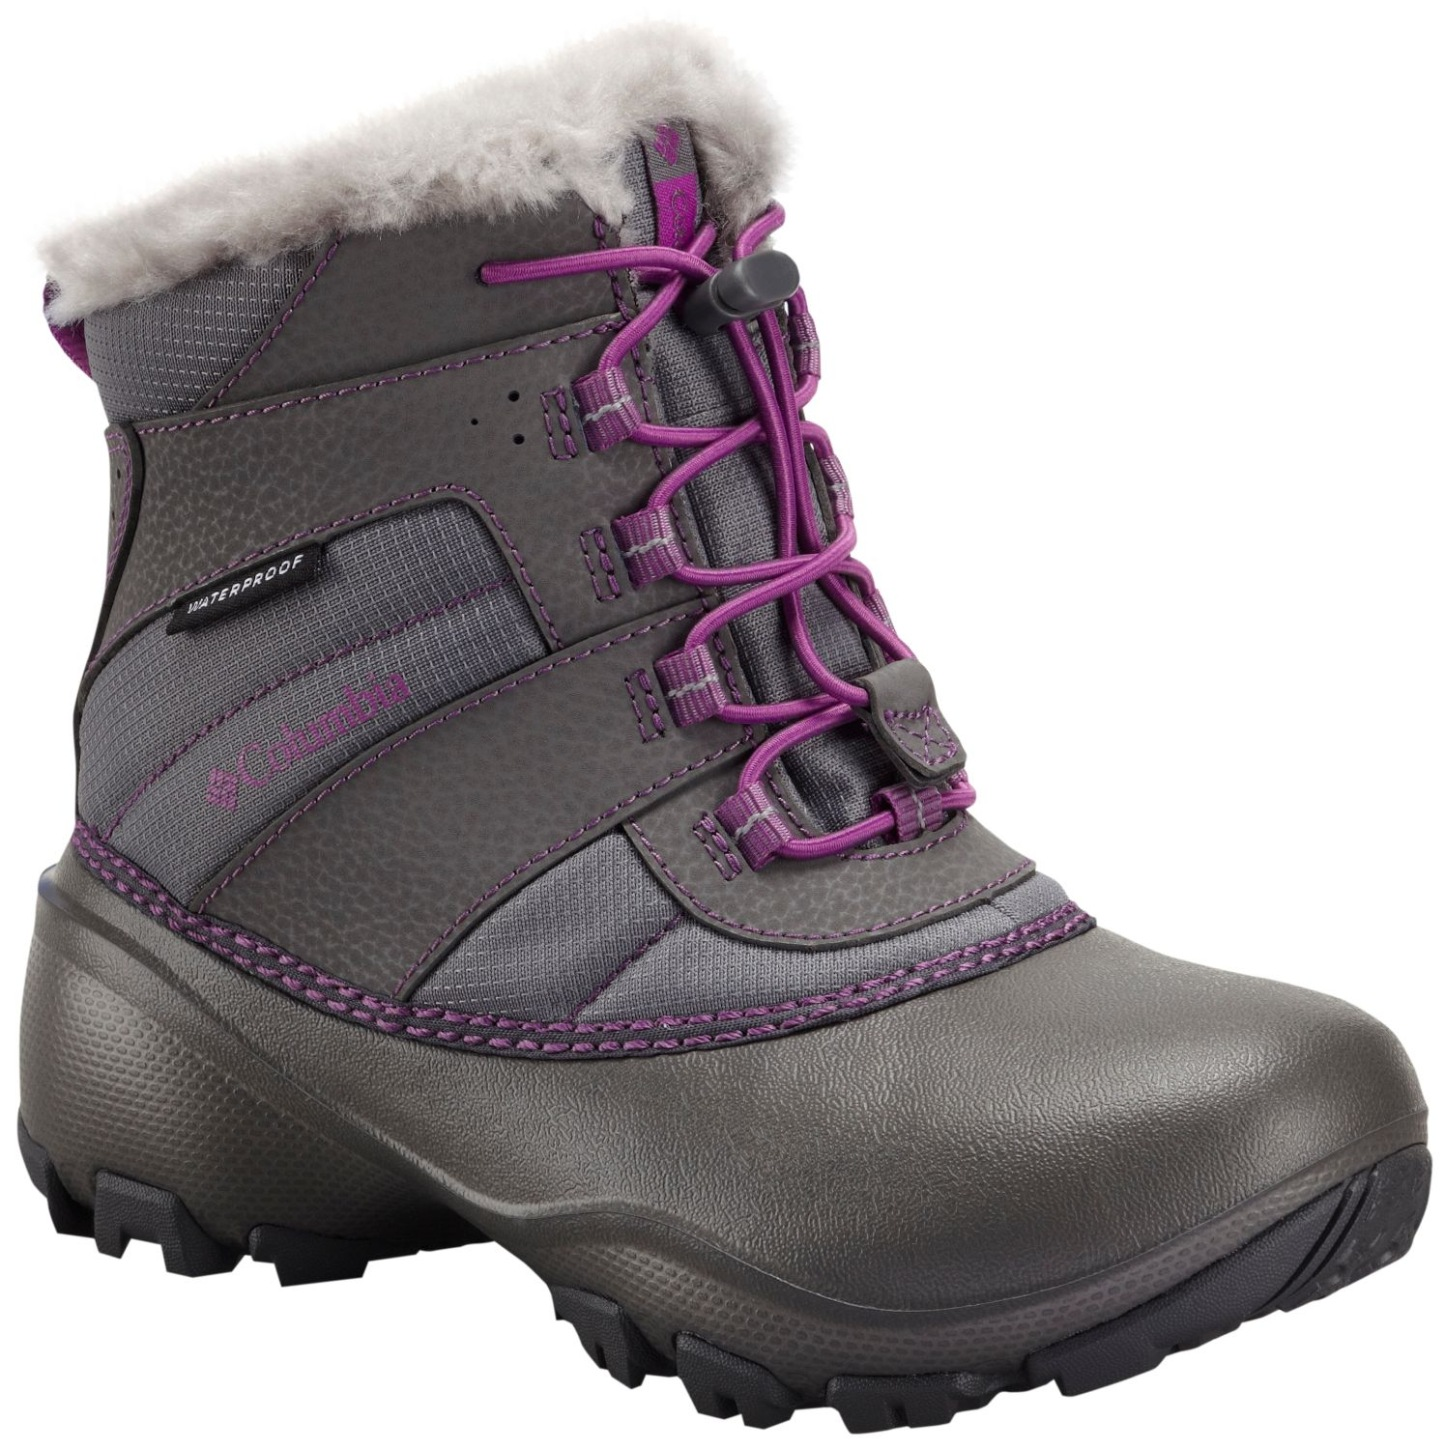 Columbia Girls' Rope Tow III Waterproof Snow Boot Charcoal, Razzle-30